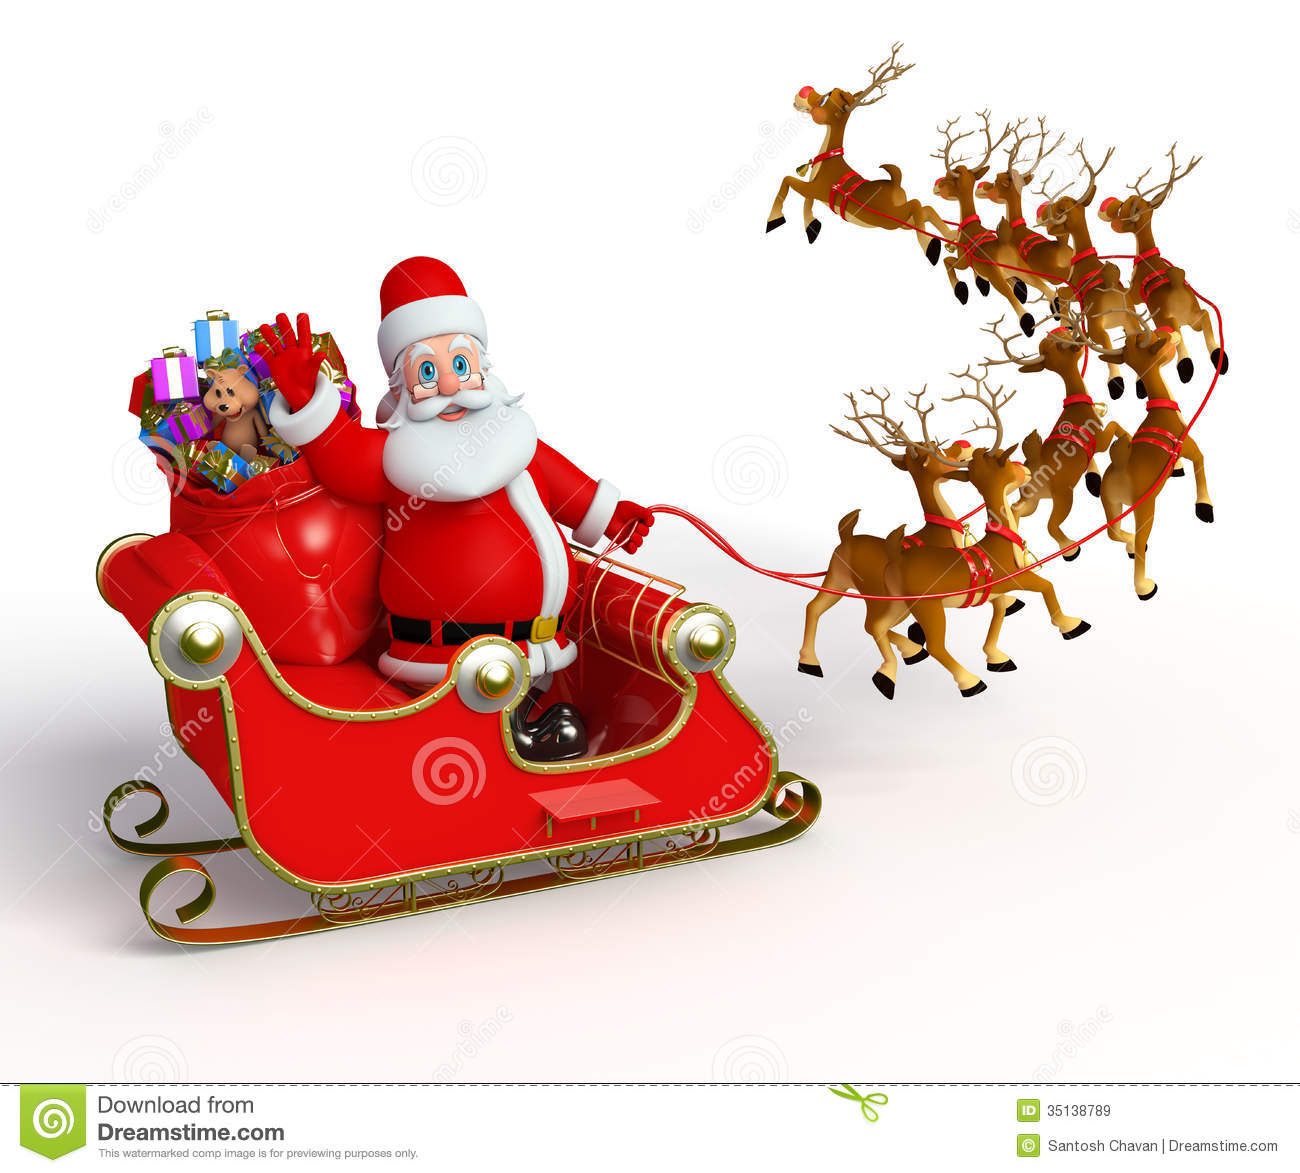 Stock Photo: Santa Claus with his sleigh. Image: